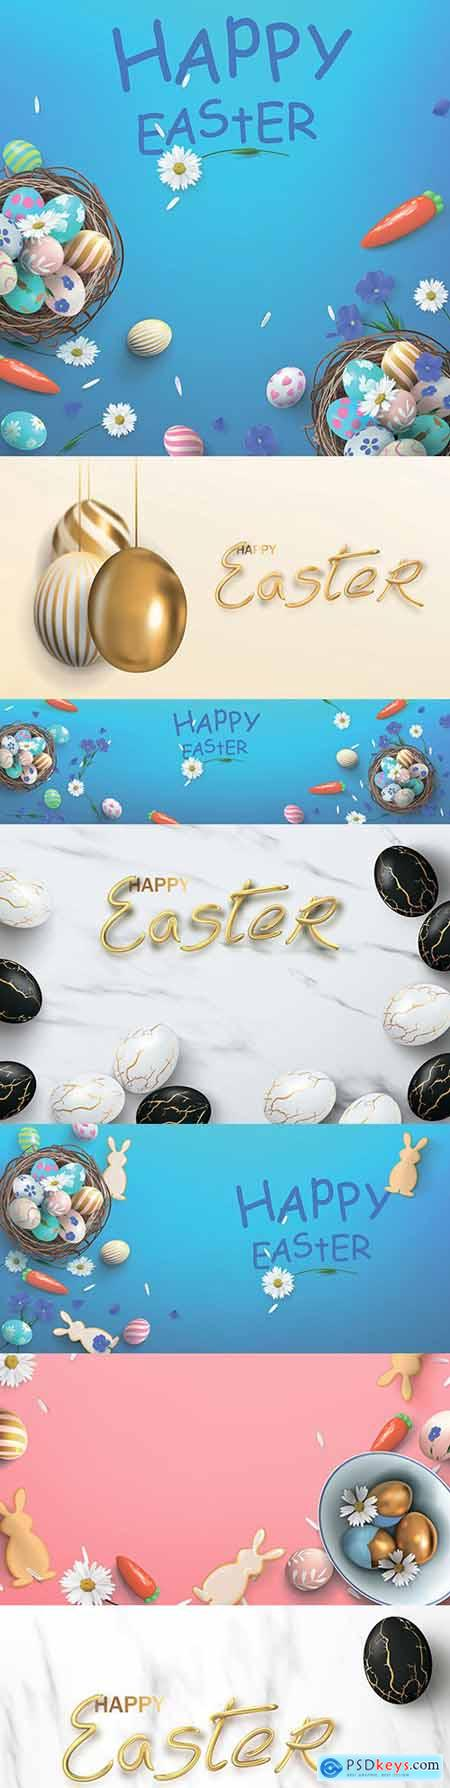 Happy Easter background and design banner with colorful eggs 3